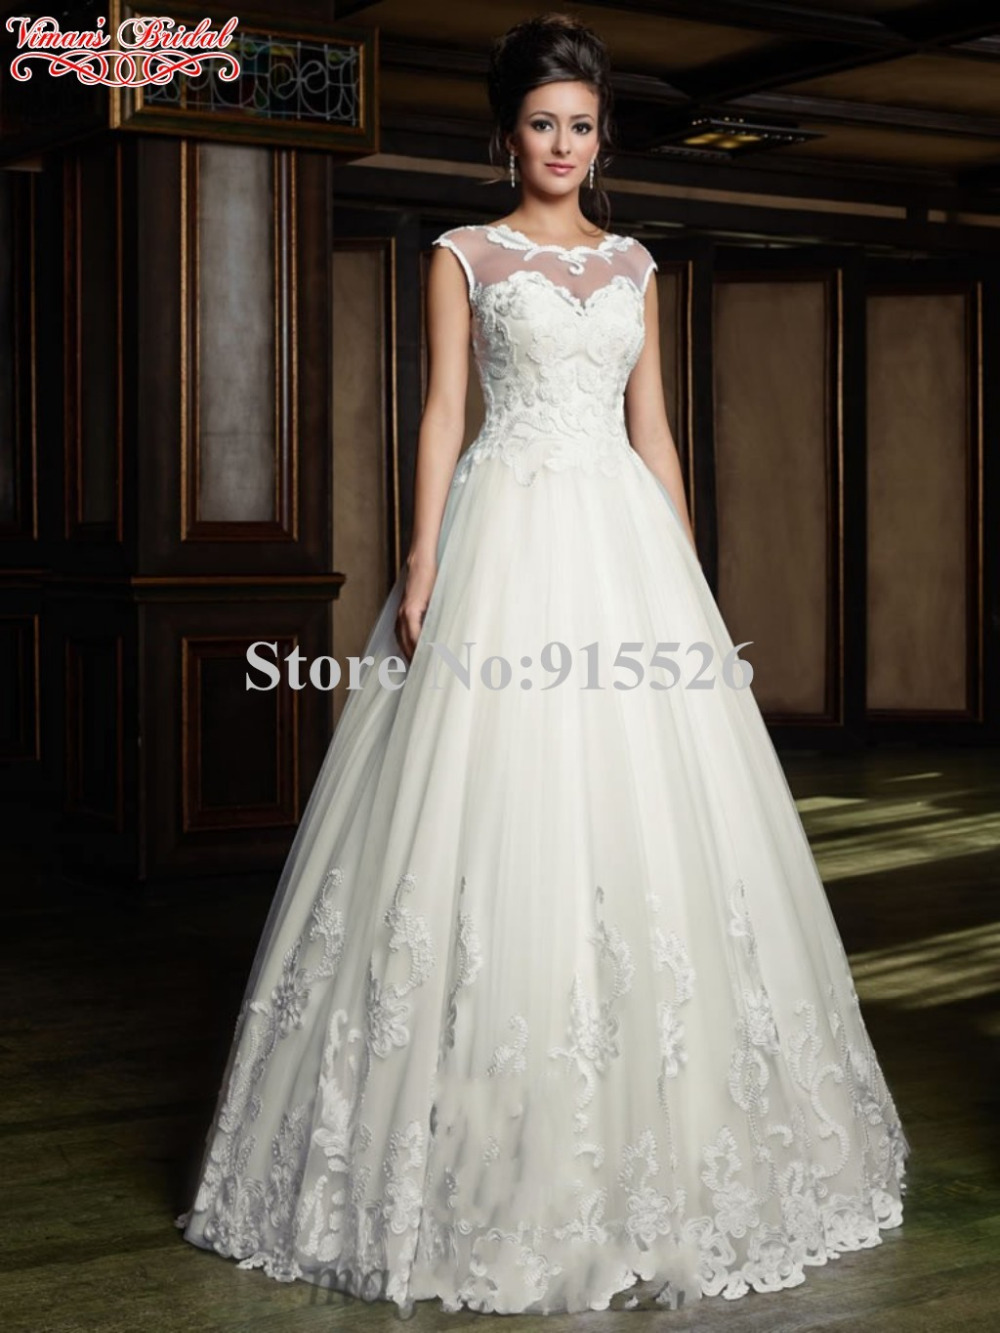 White Gothic Wedding Dresses 21